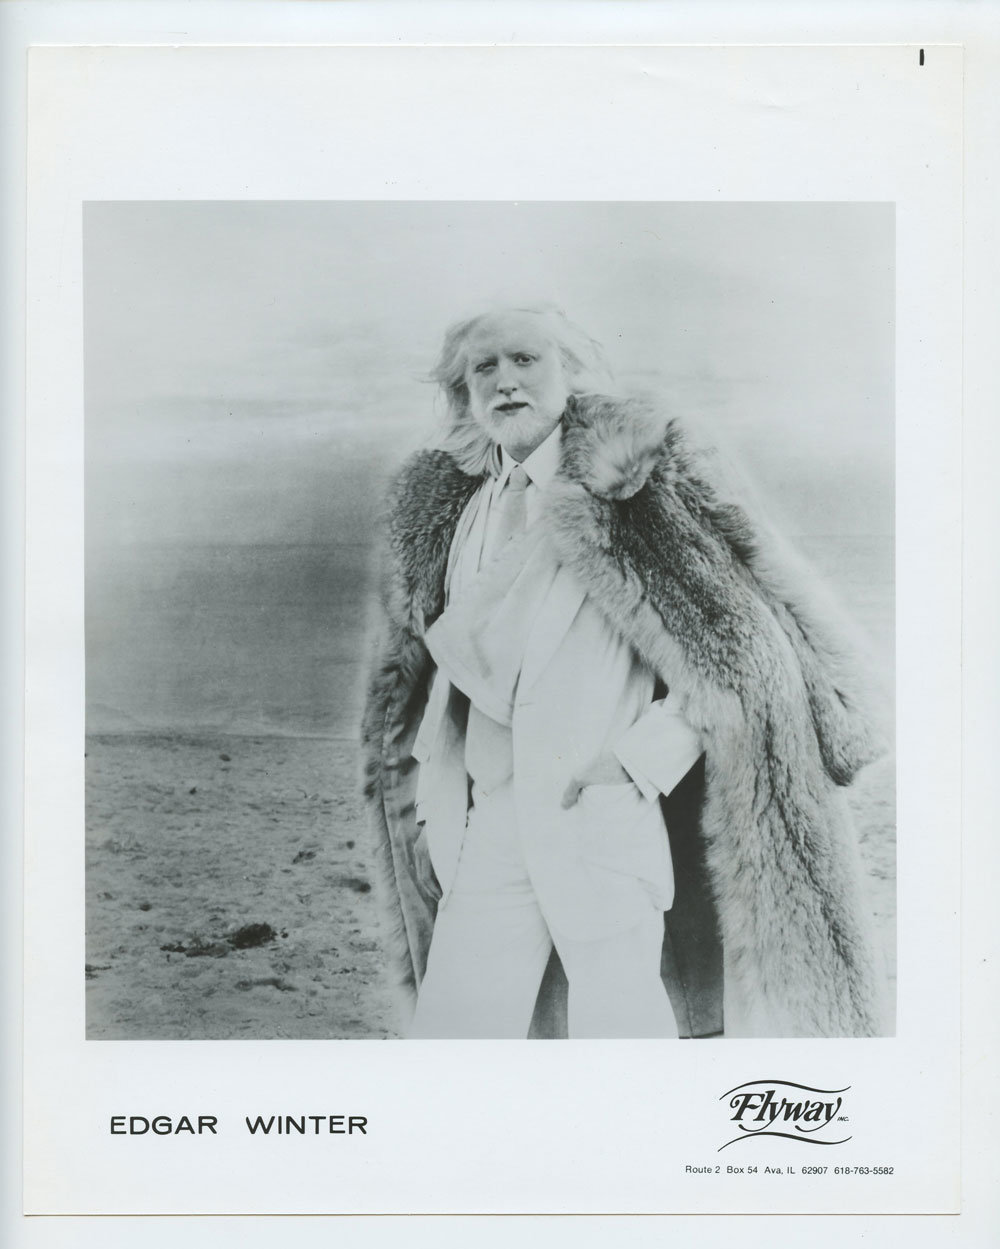 Edgar Winter Photo 1979 The Edgar Winter Album Promo